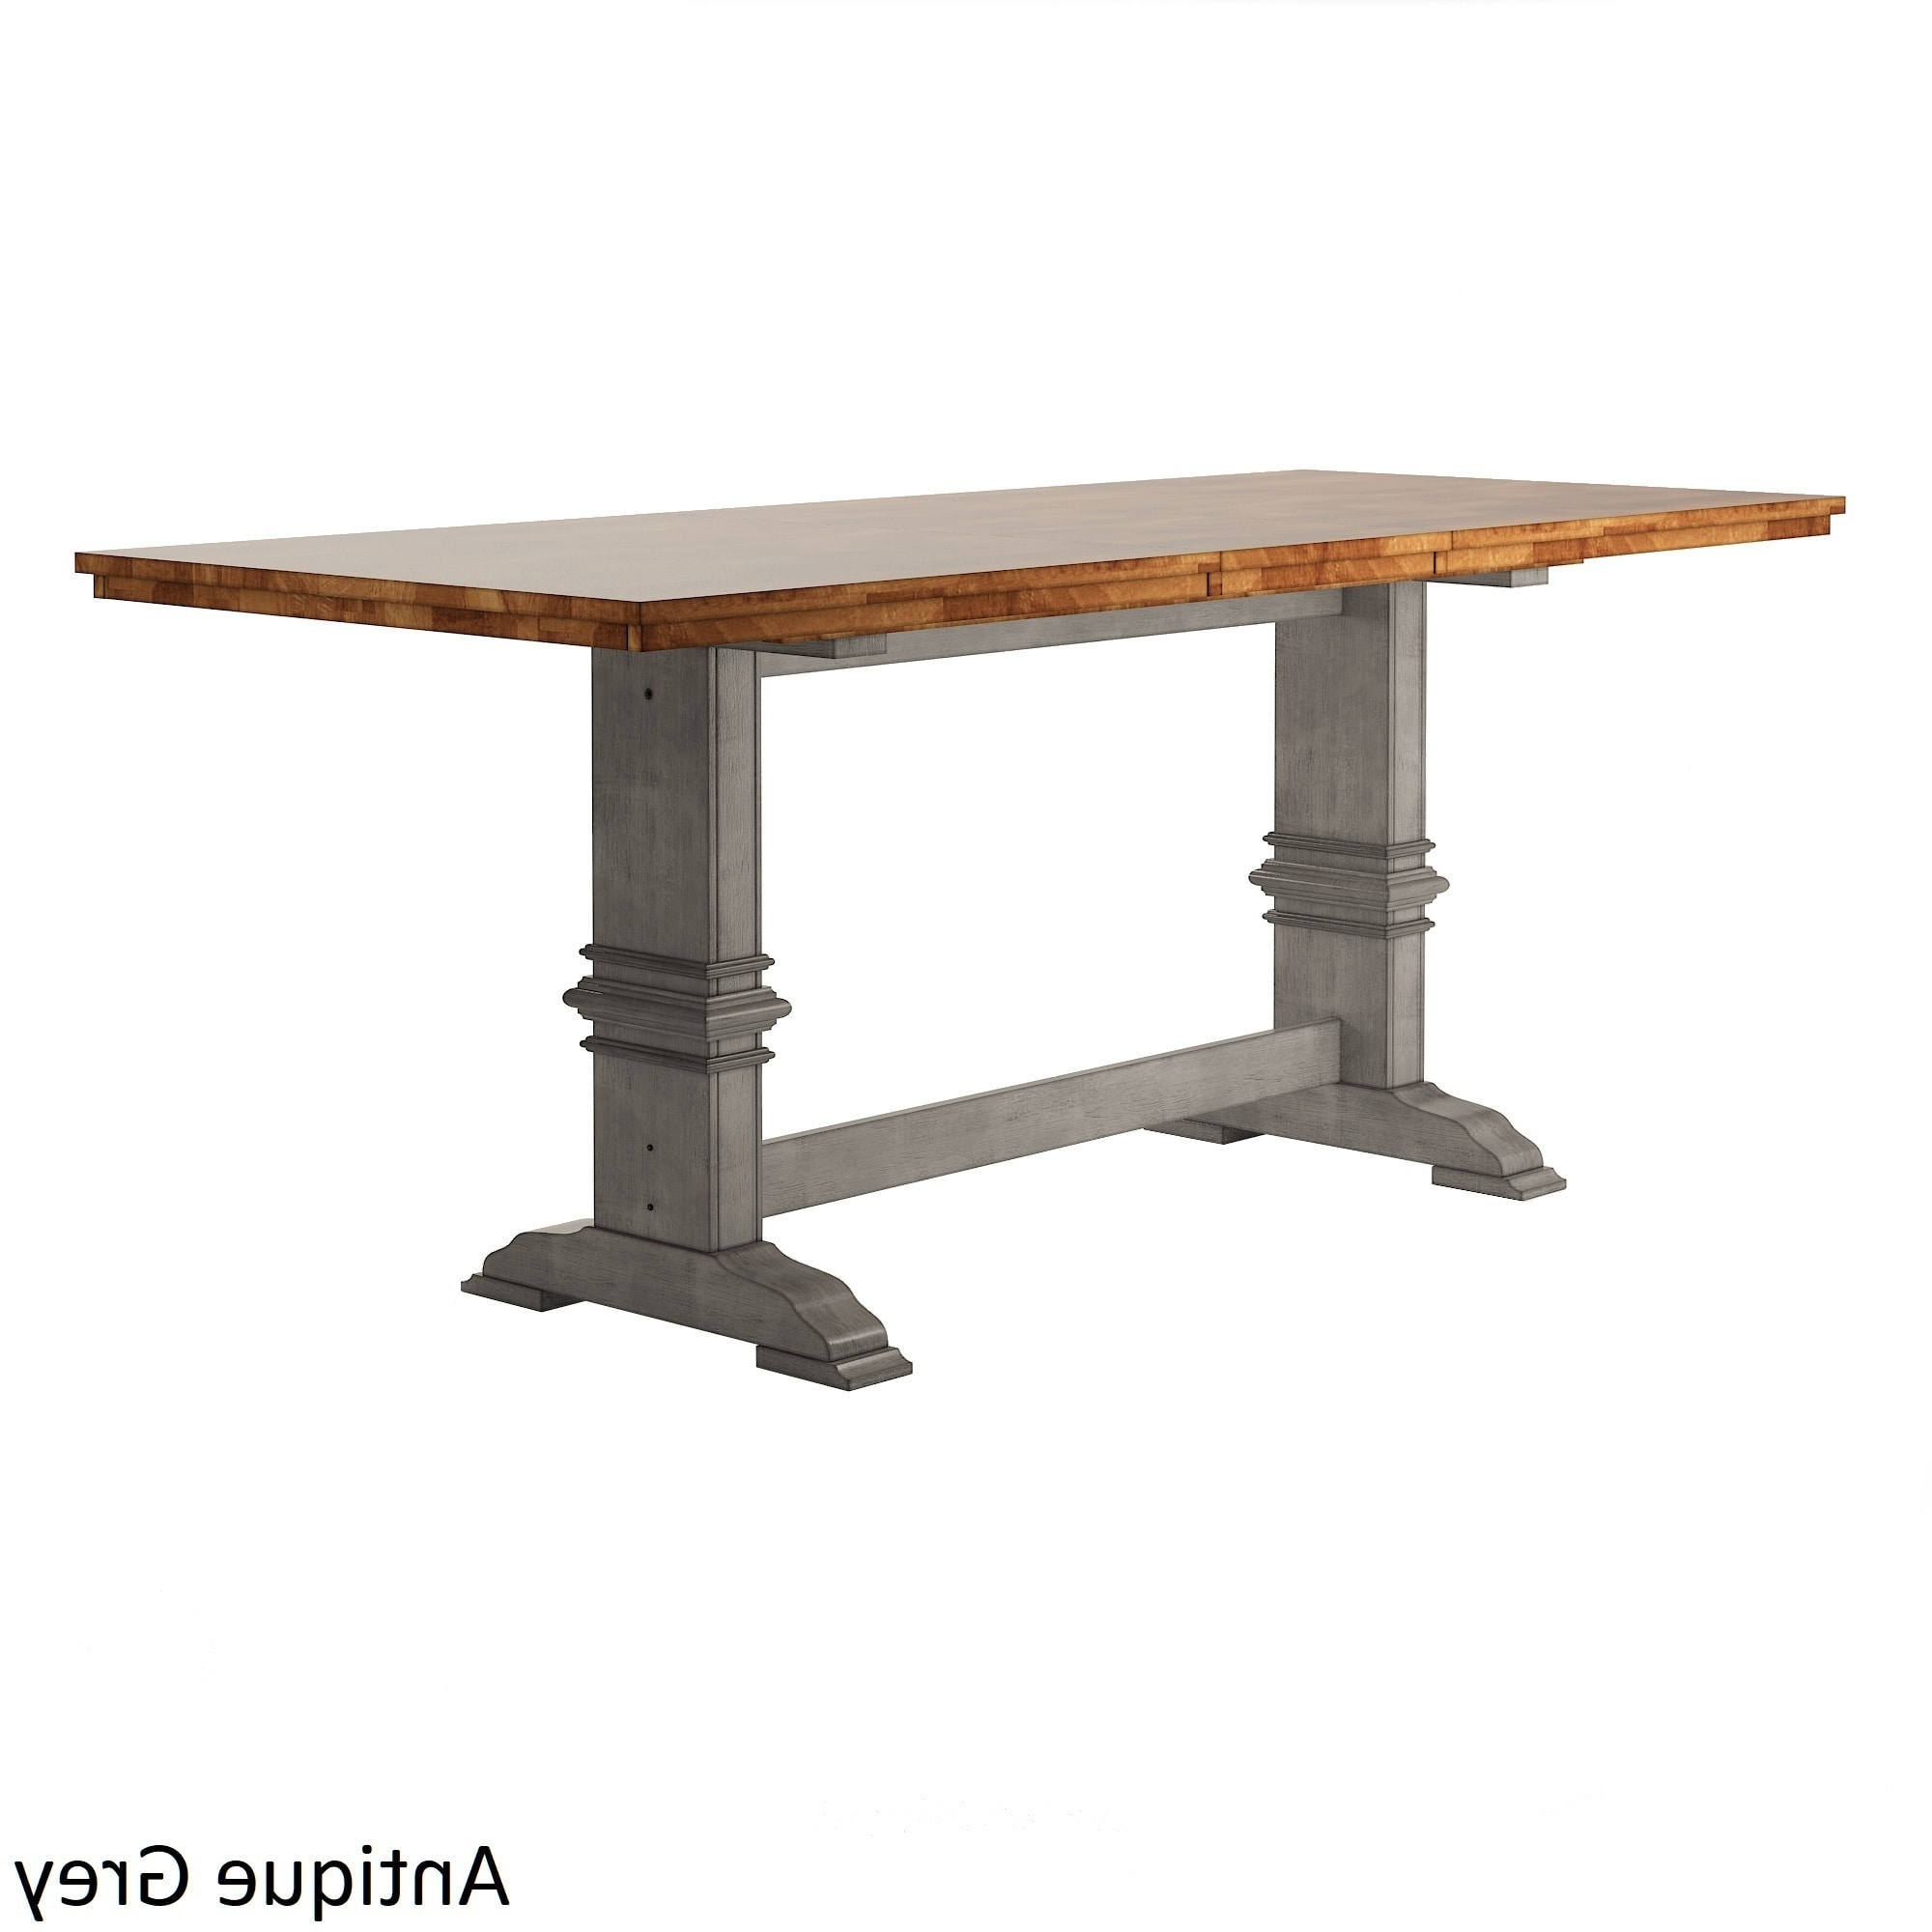 Eleanor Solid Wood Counter Height Trestle Base Dining Table Pertaining To Most Current Lucy Bar Height Dining Tables (View 5 of 25)